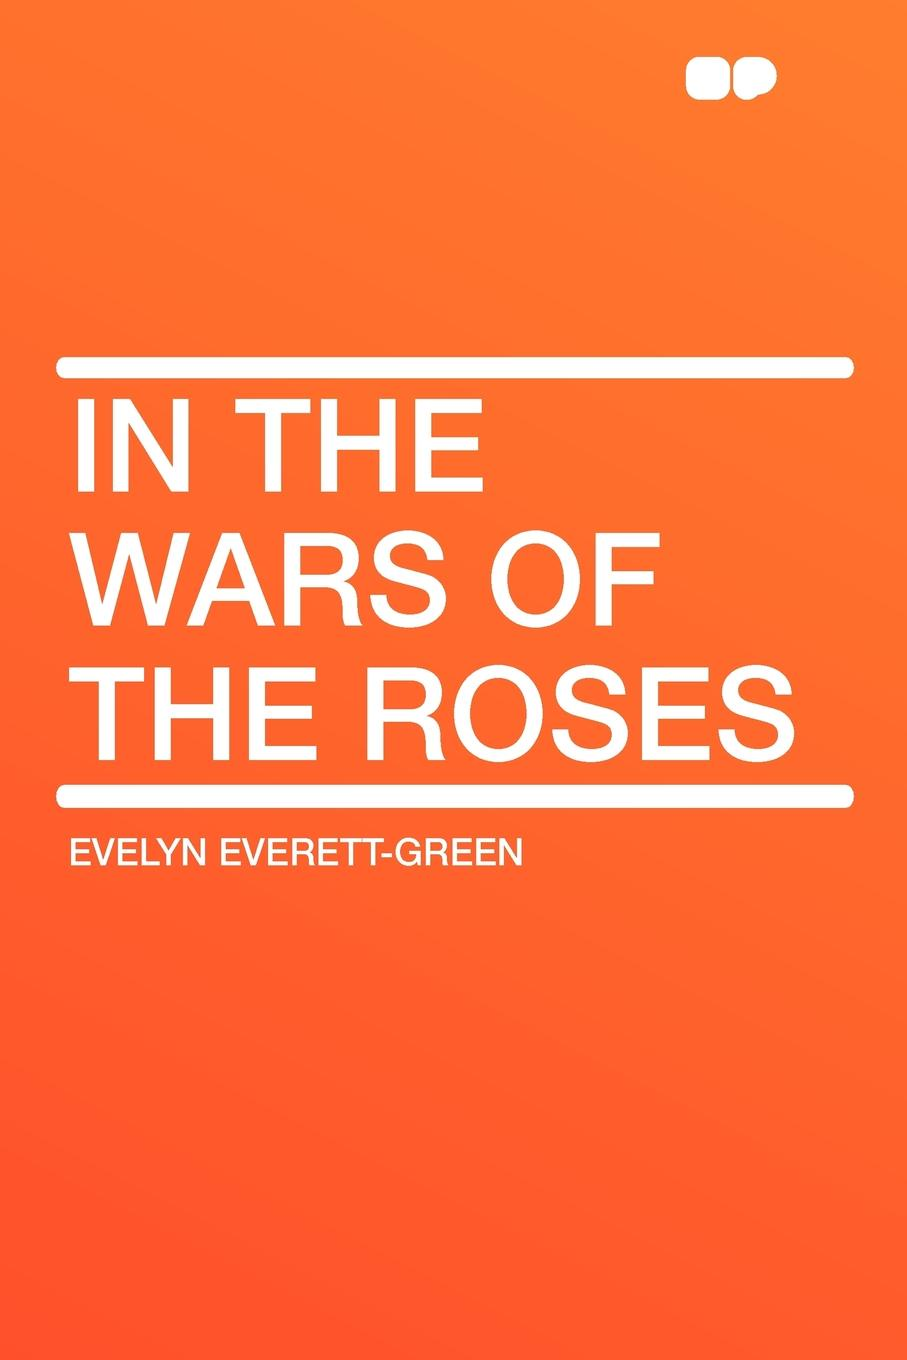 Evelyn Everett-Green In the Wars of the Roses edgar john george the wars of the roses